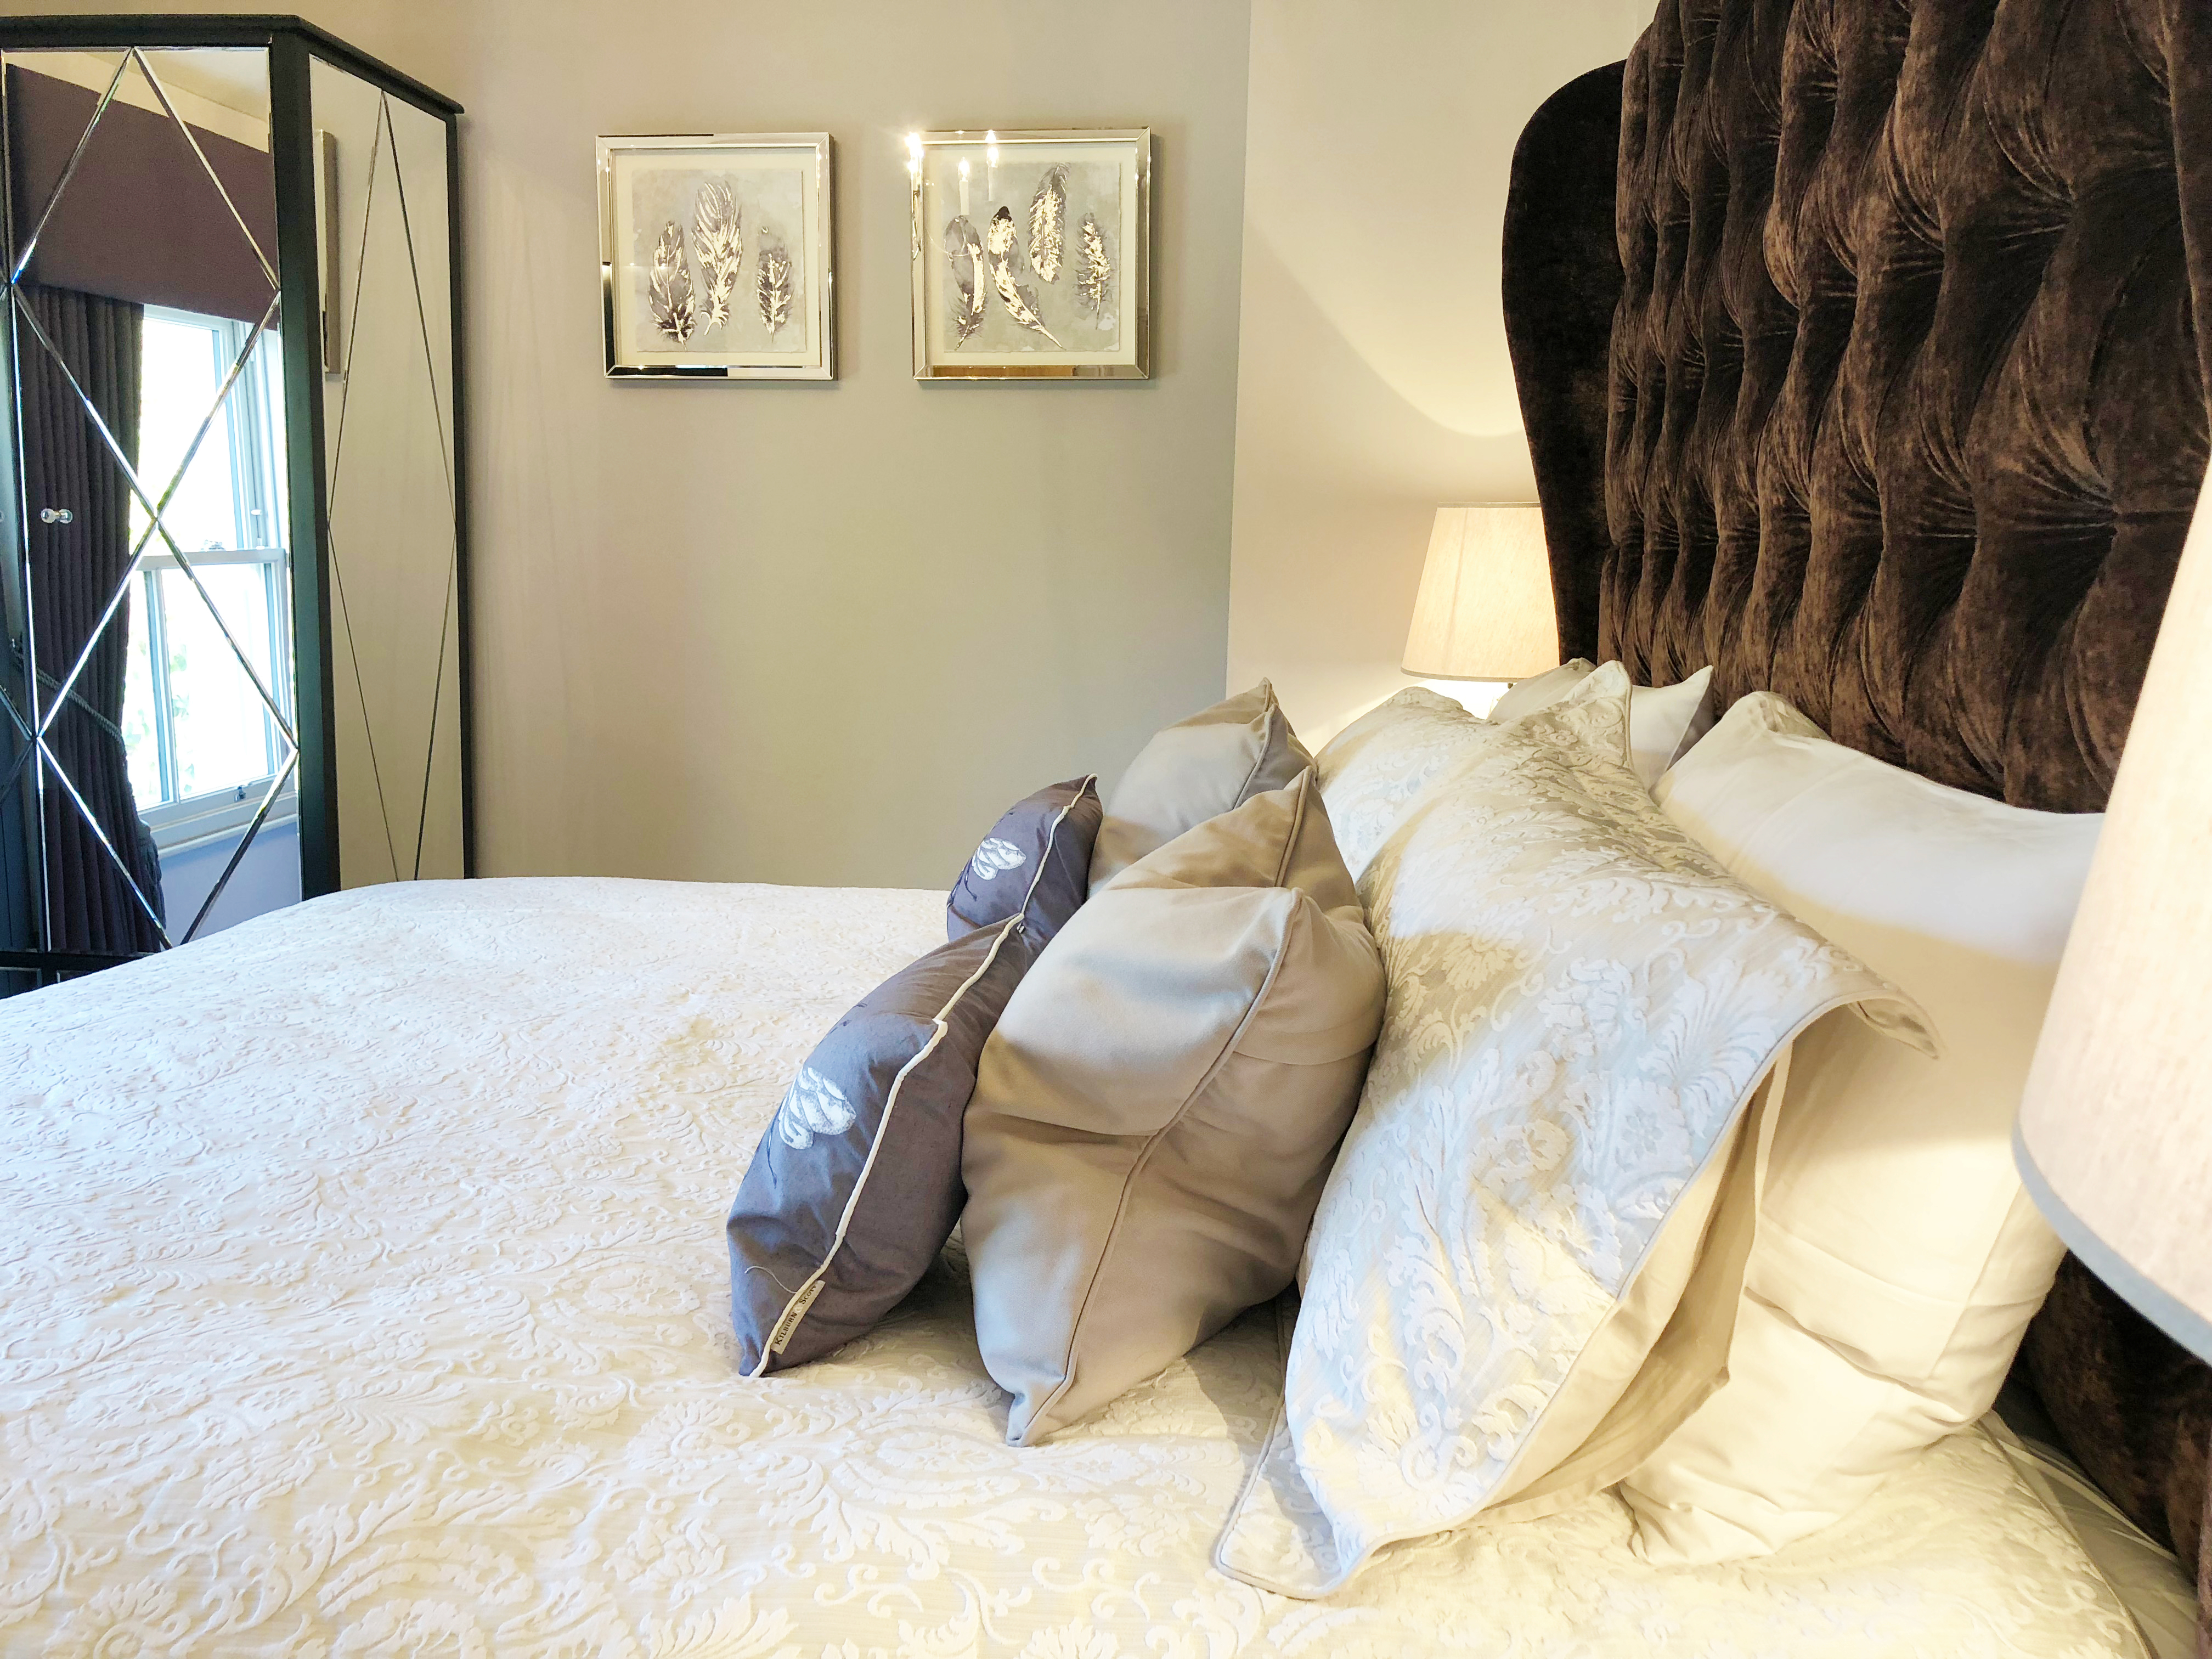 Honeybee Cottage luxury self catering with river views near beach at Warkworth Northumberland